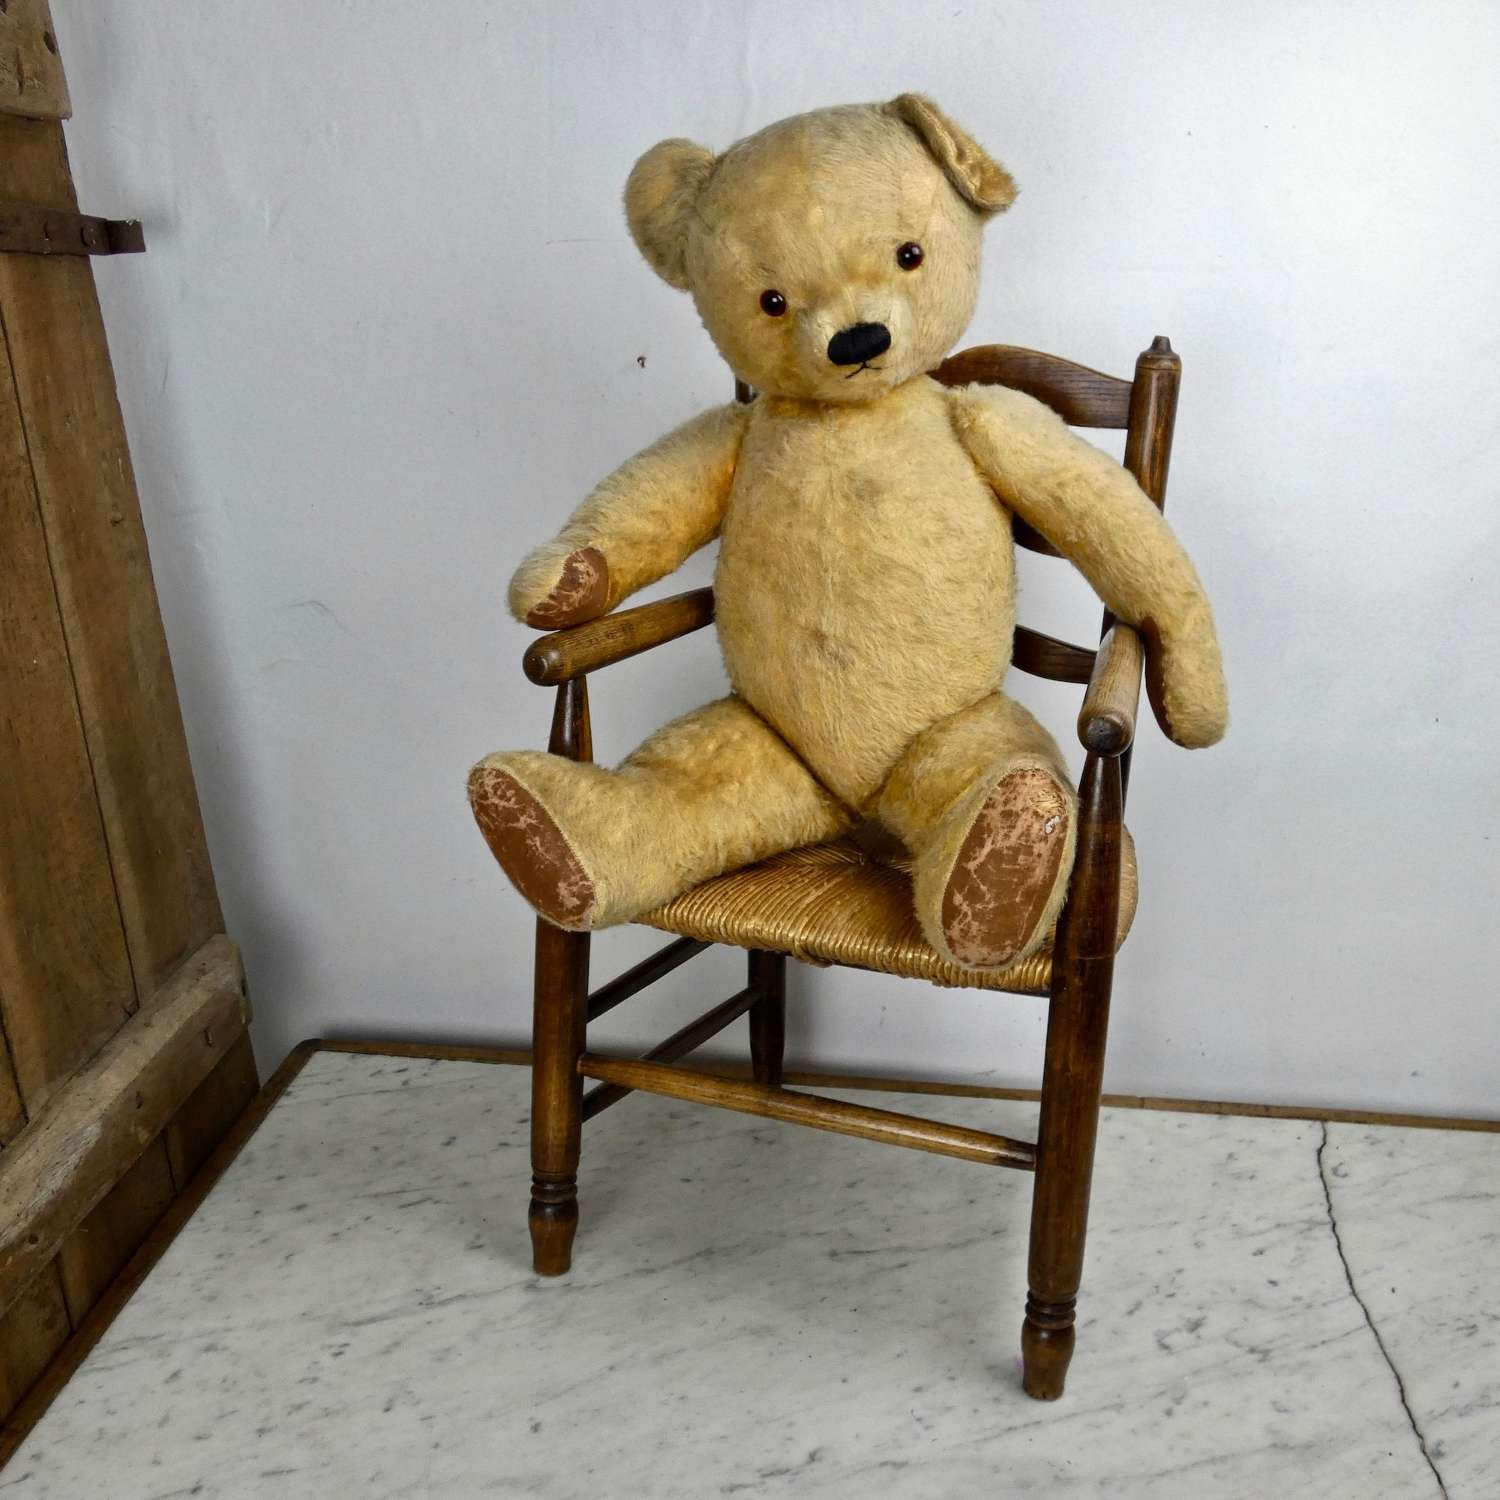 Large, 1950's teddy bear